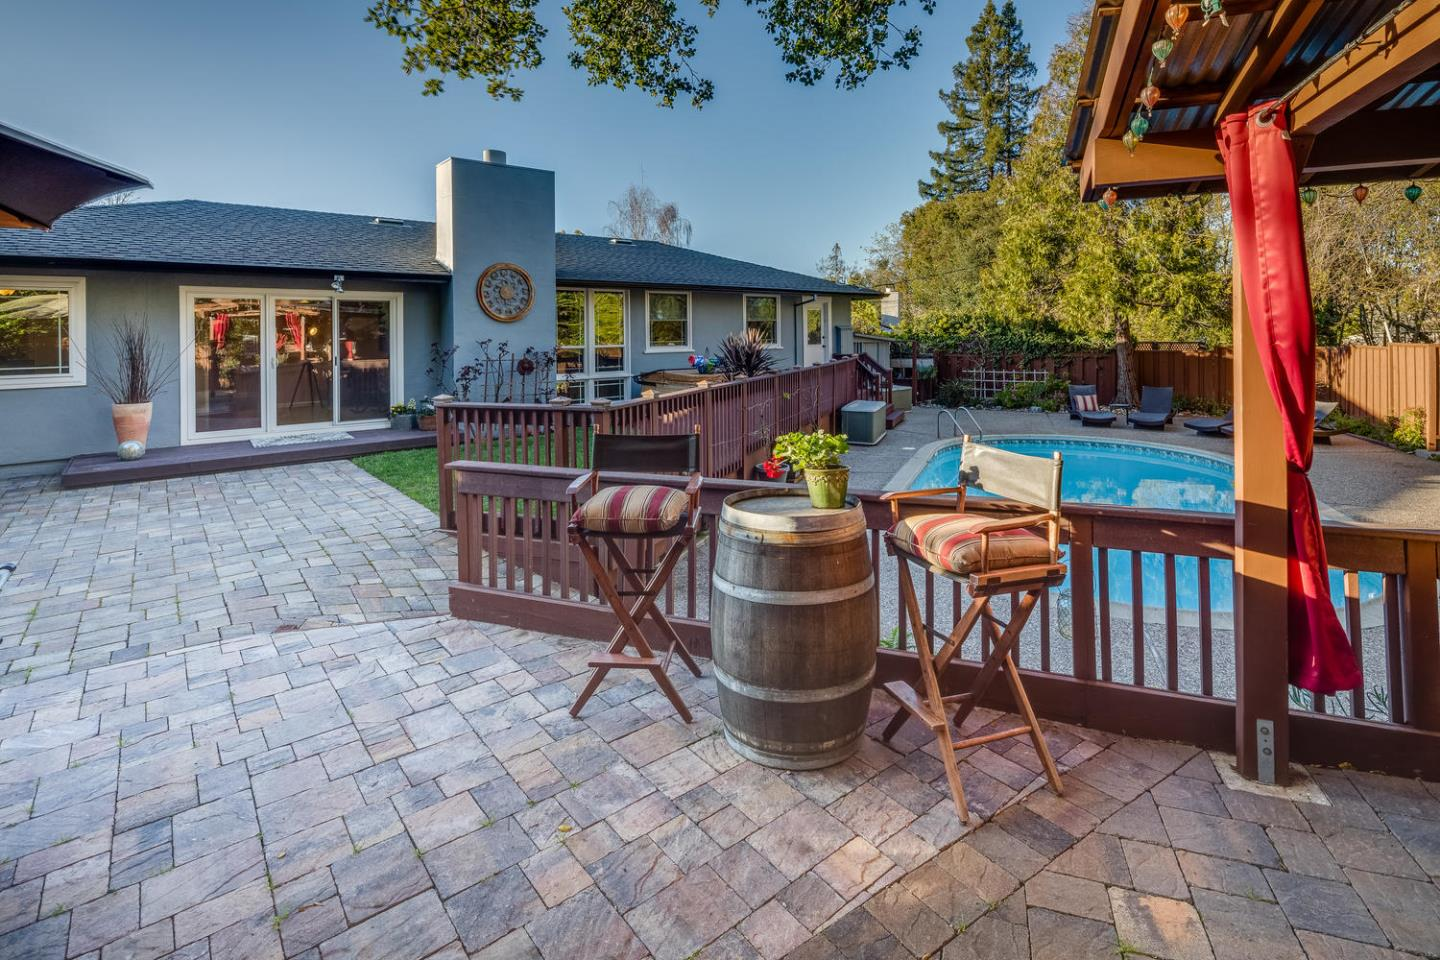 Additional photo for property listing at 1557 Granger Way  REDWOOD CITY, CALIFORNIA 94061